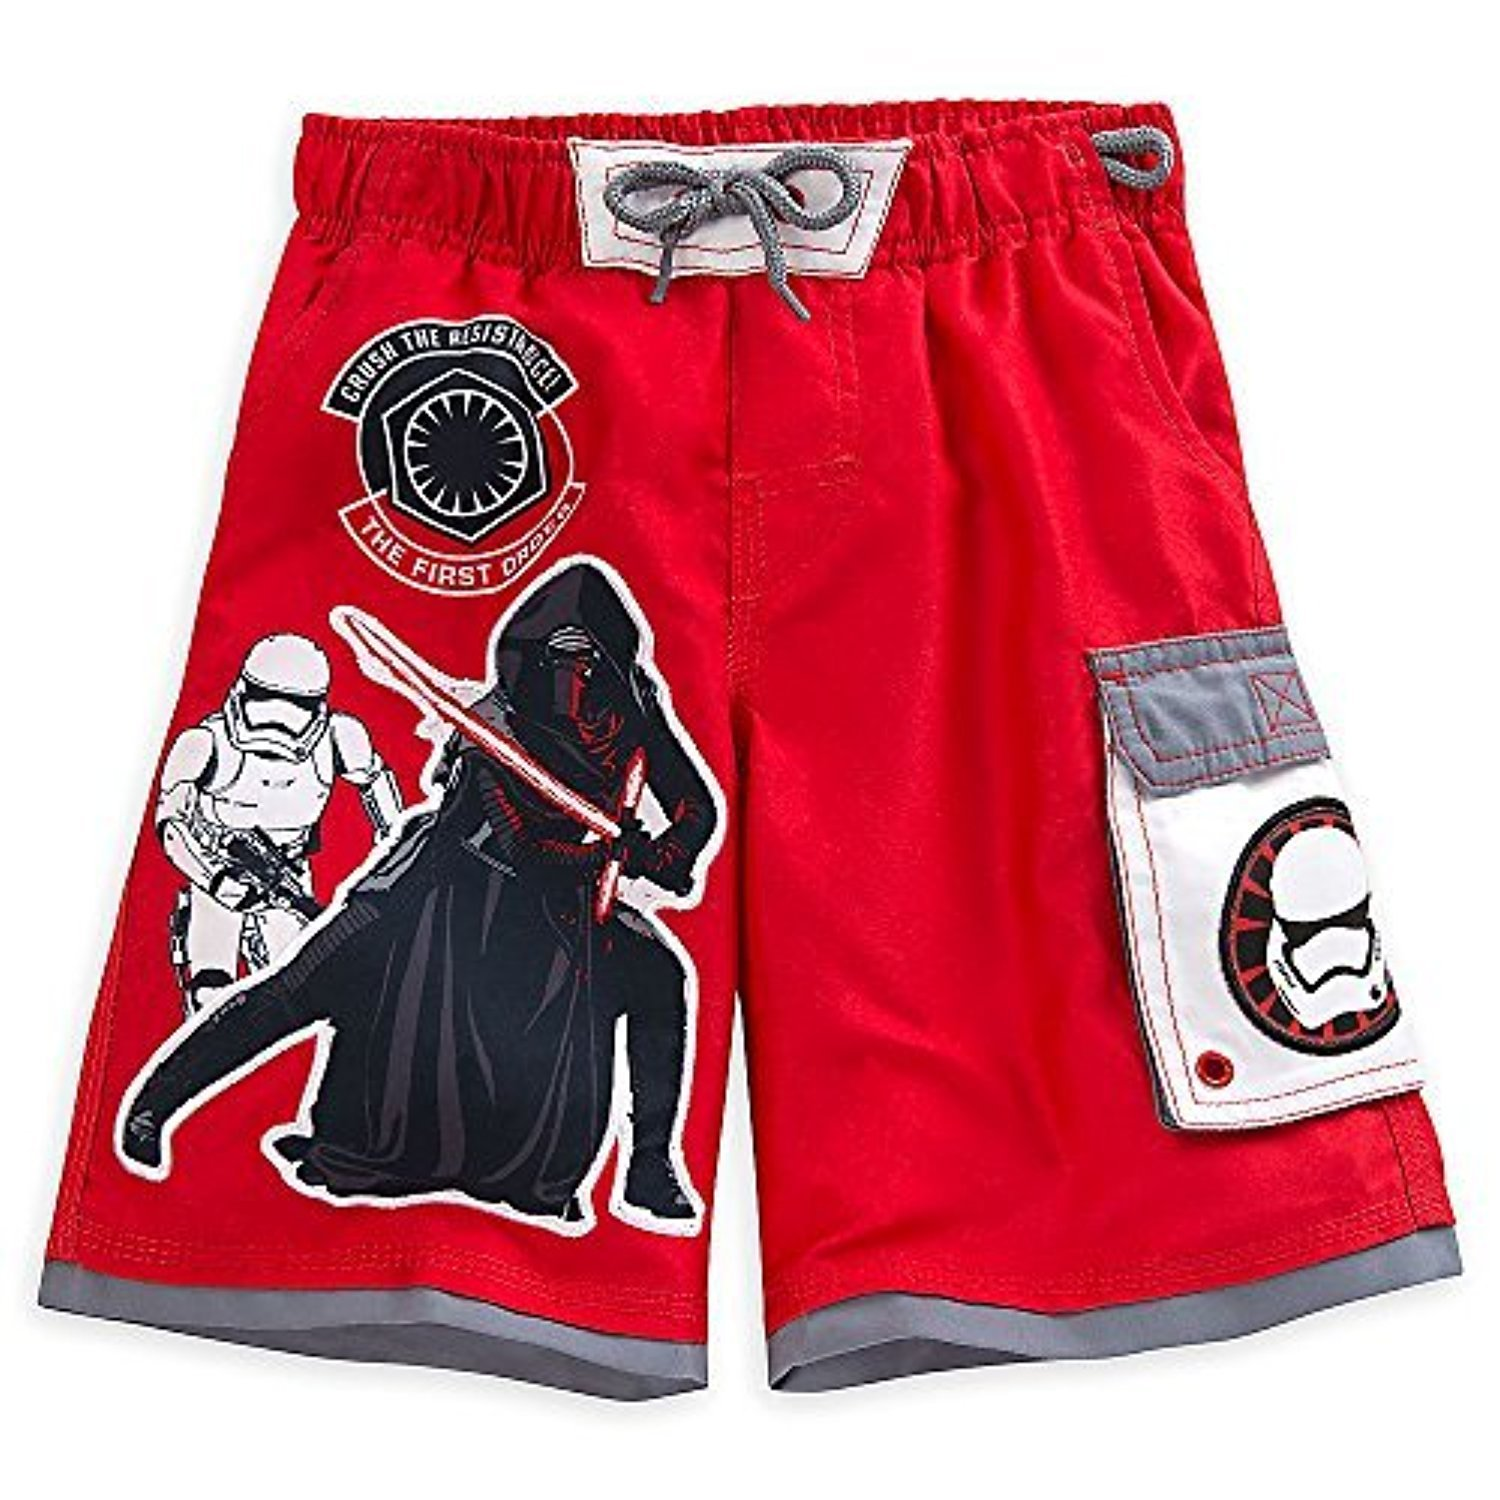 85031ee0309a4 Amazon.com: Disney Star Wars Swim Trunks for Boys: Clothing